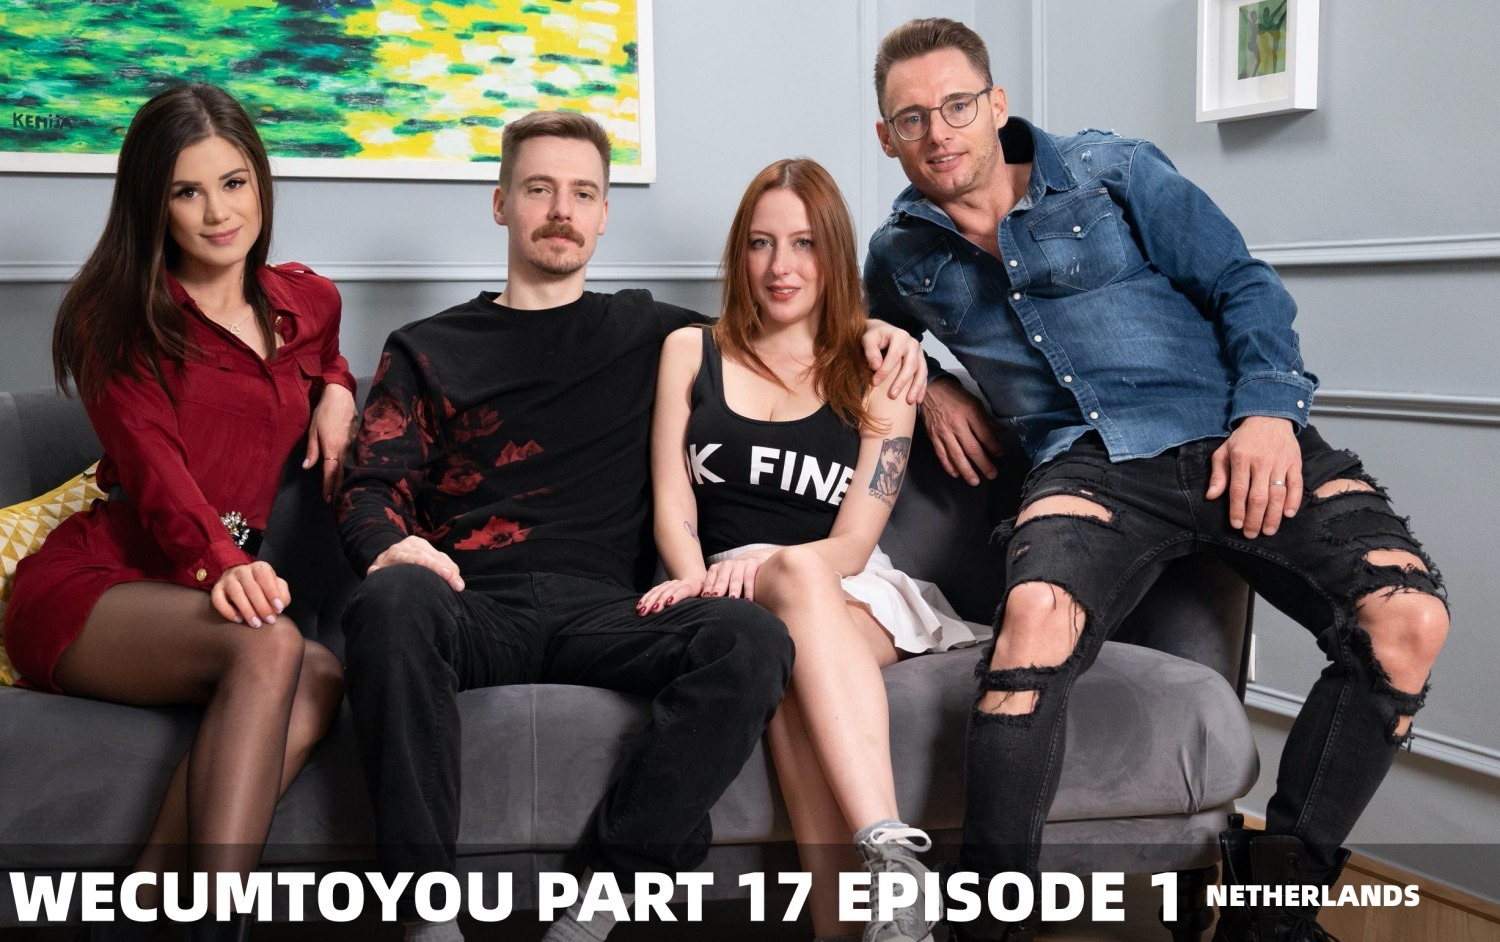 Mary Jane Evans and James Blond WECUMTOYOU PART 17 Episode 1